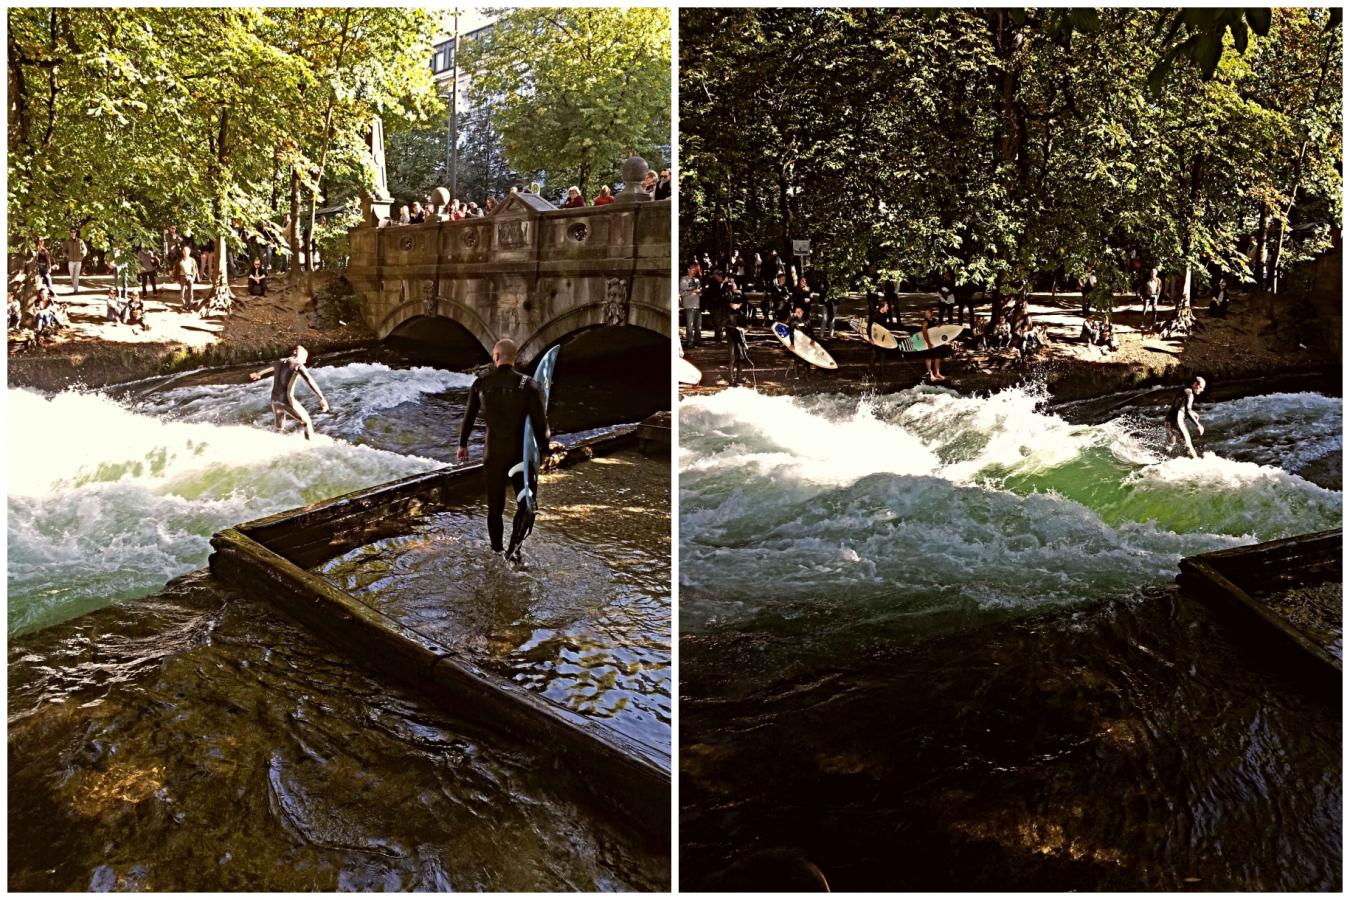 Surfers riding the Eisbach river rapids in Munich